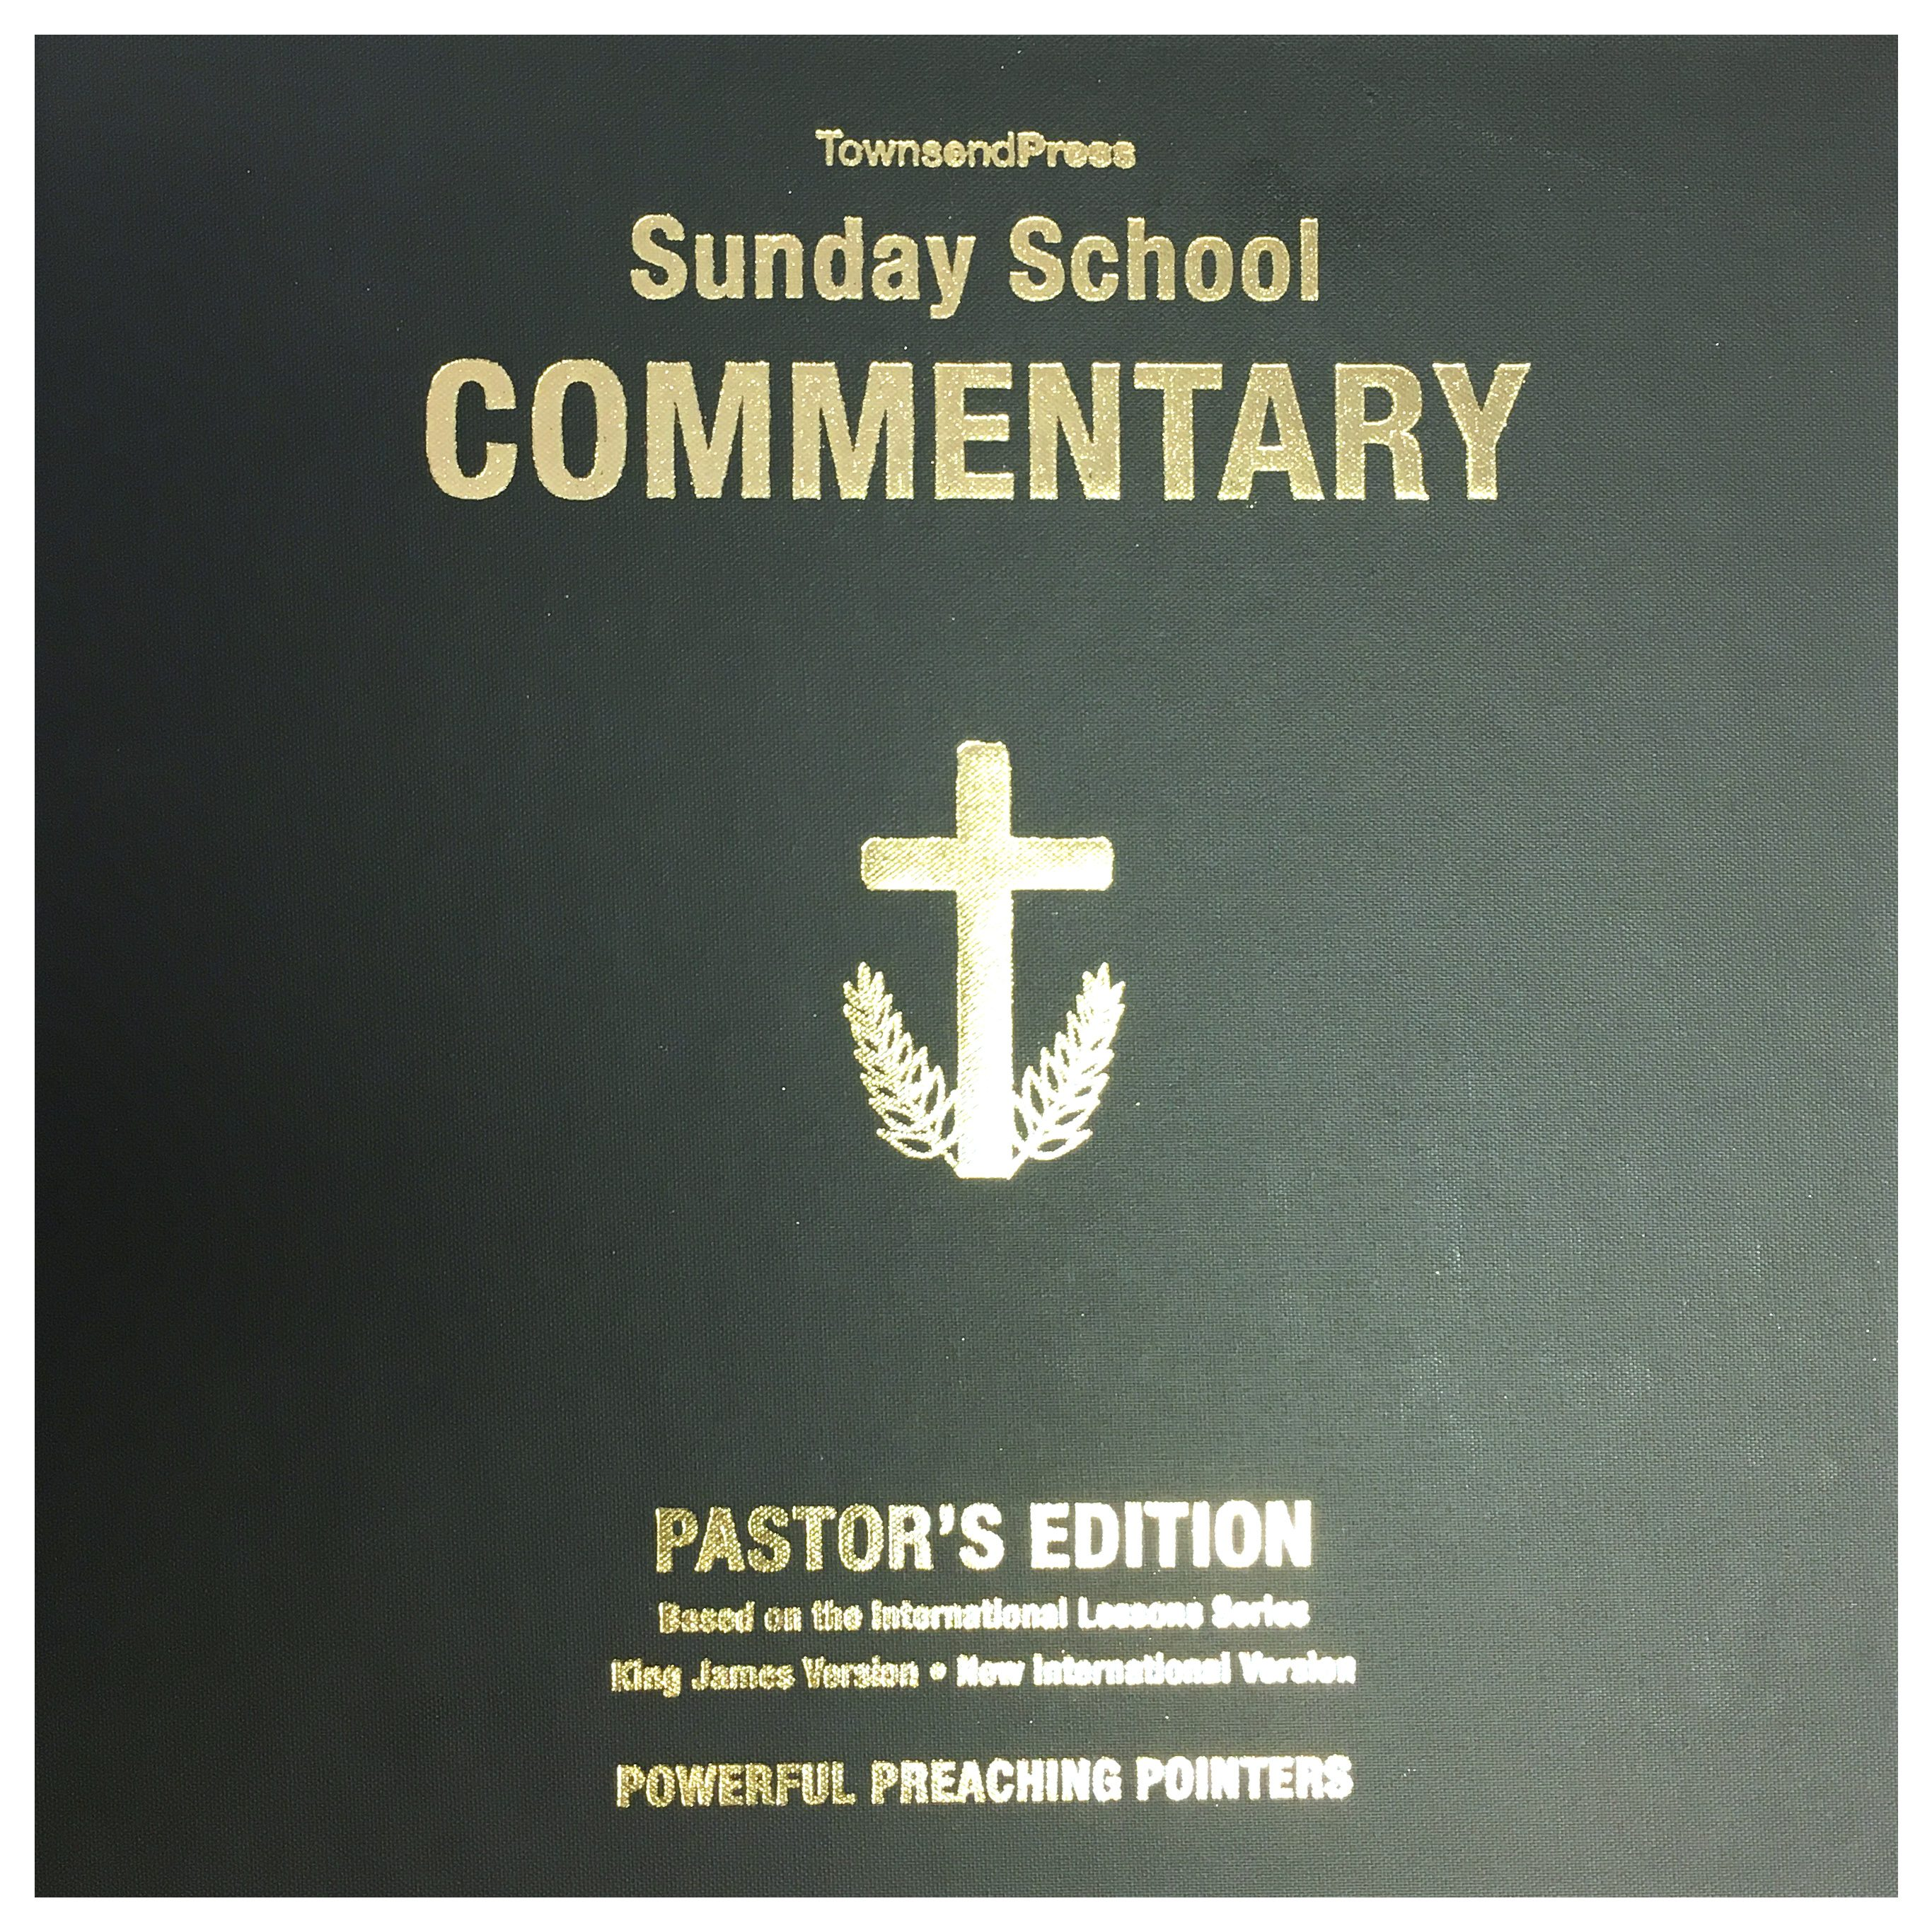 2016-2017 Townsend Press Sunday School Commentary Pastor's Edition